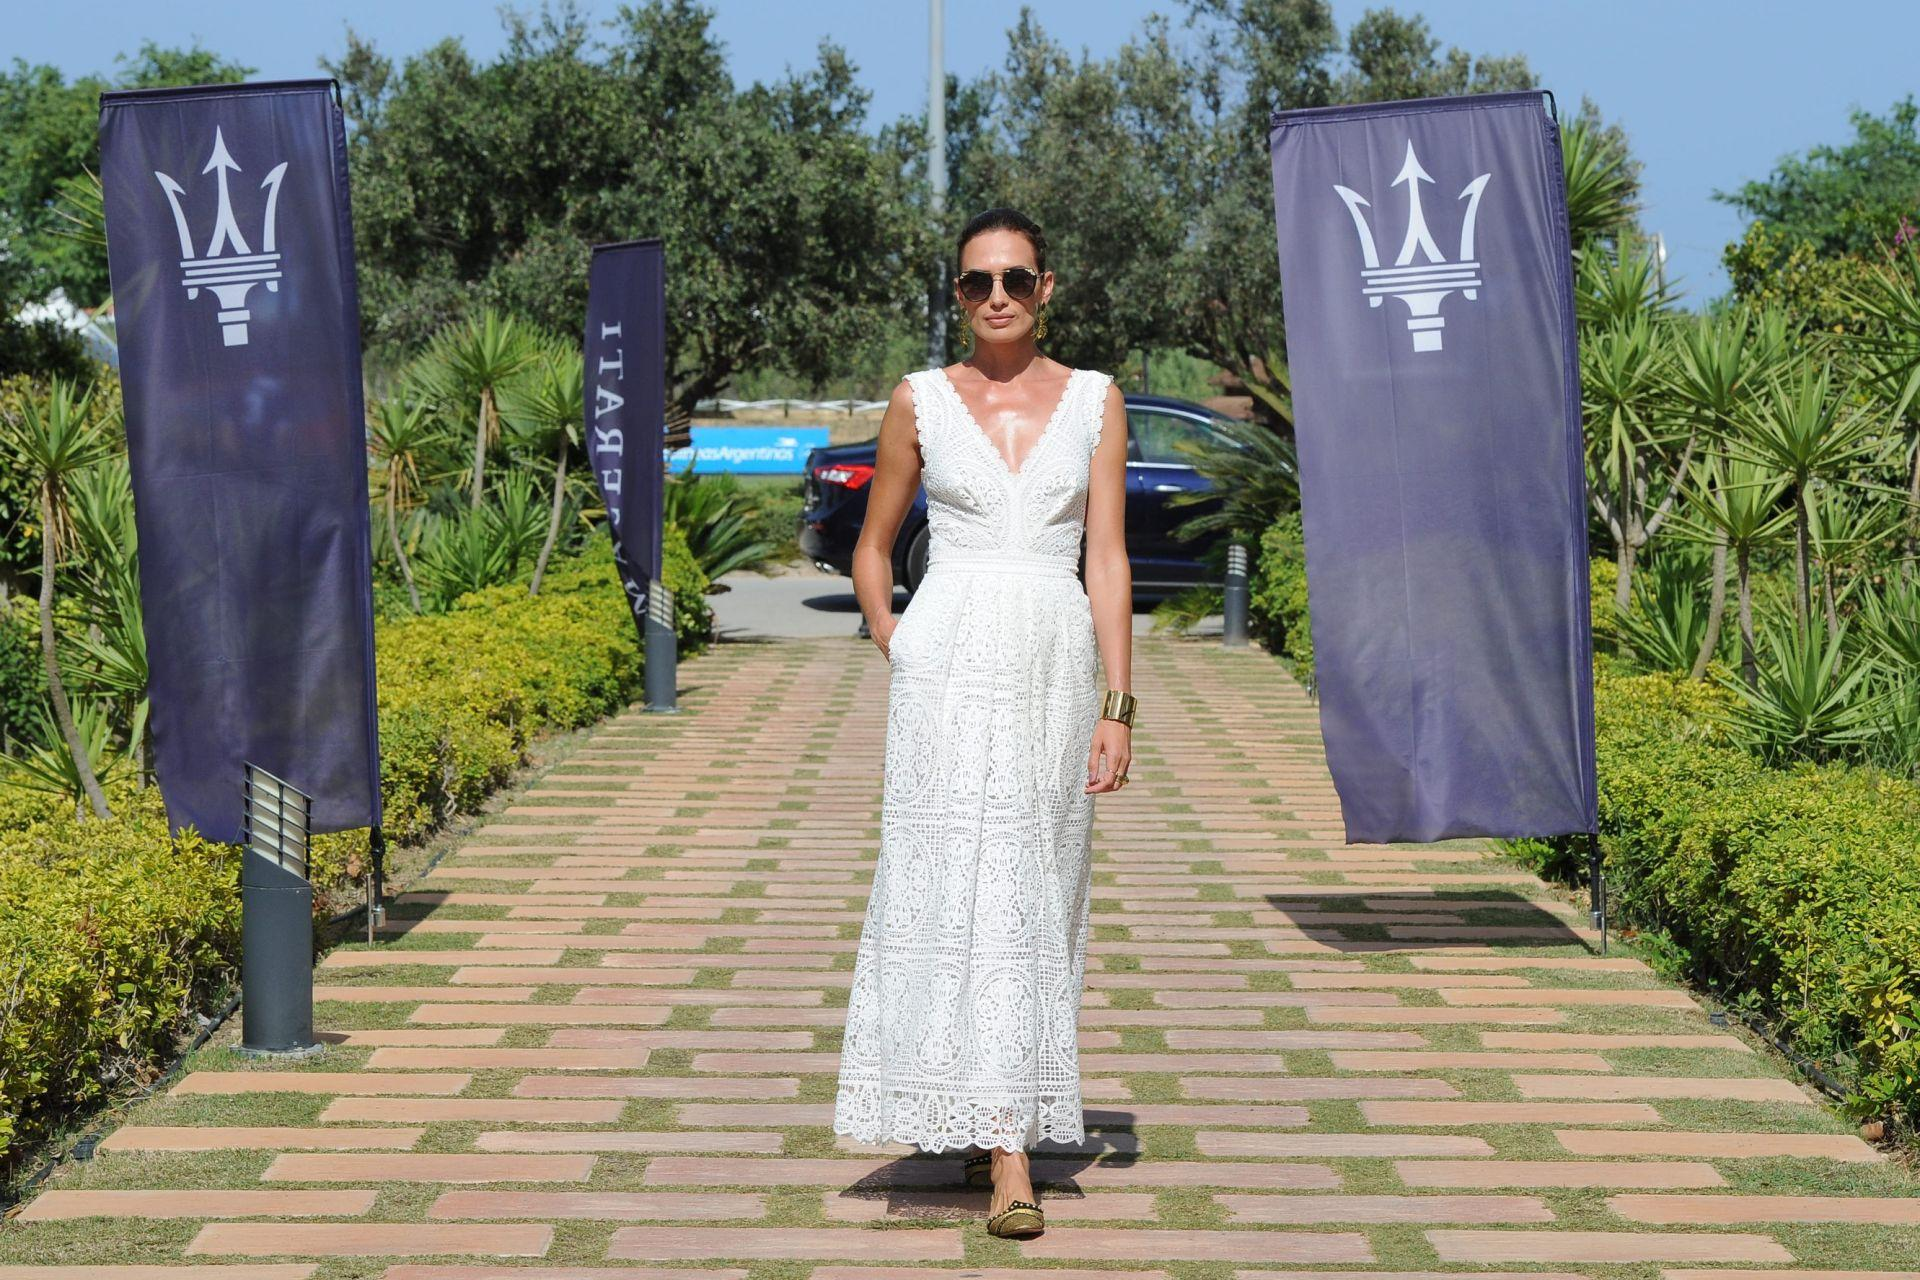 Maserati_Polo_Tour-_Copa_de_Plata_Maserati_in_Sotogrande-Nieves_Alvarez_with_Maserati_Levante_(2)